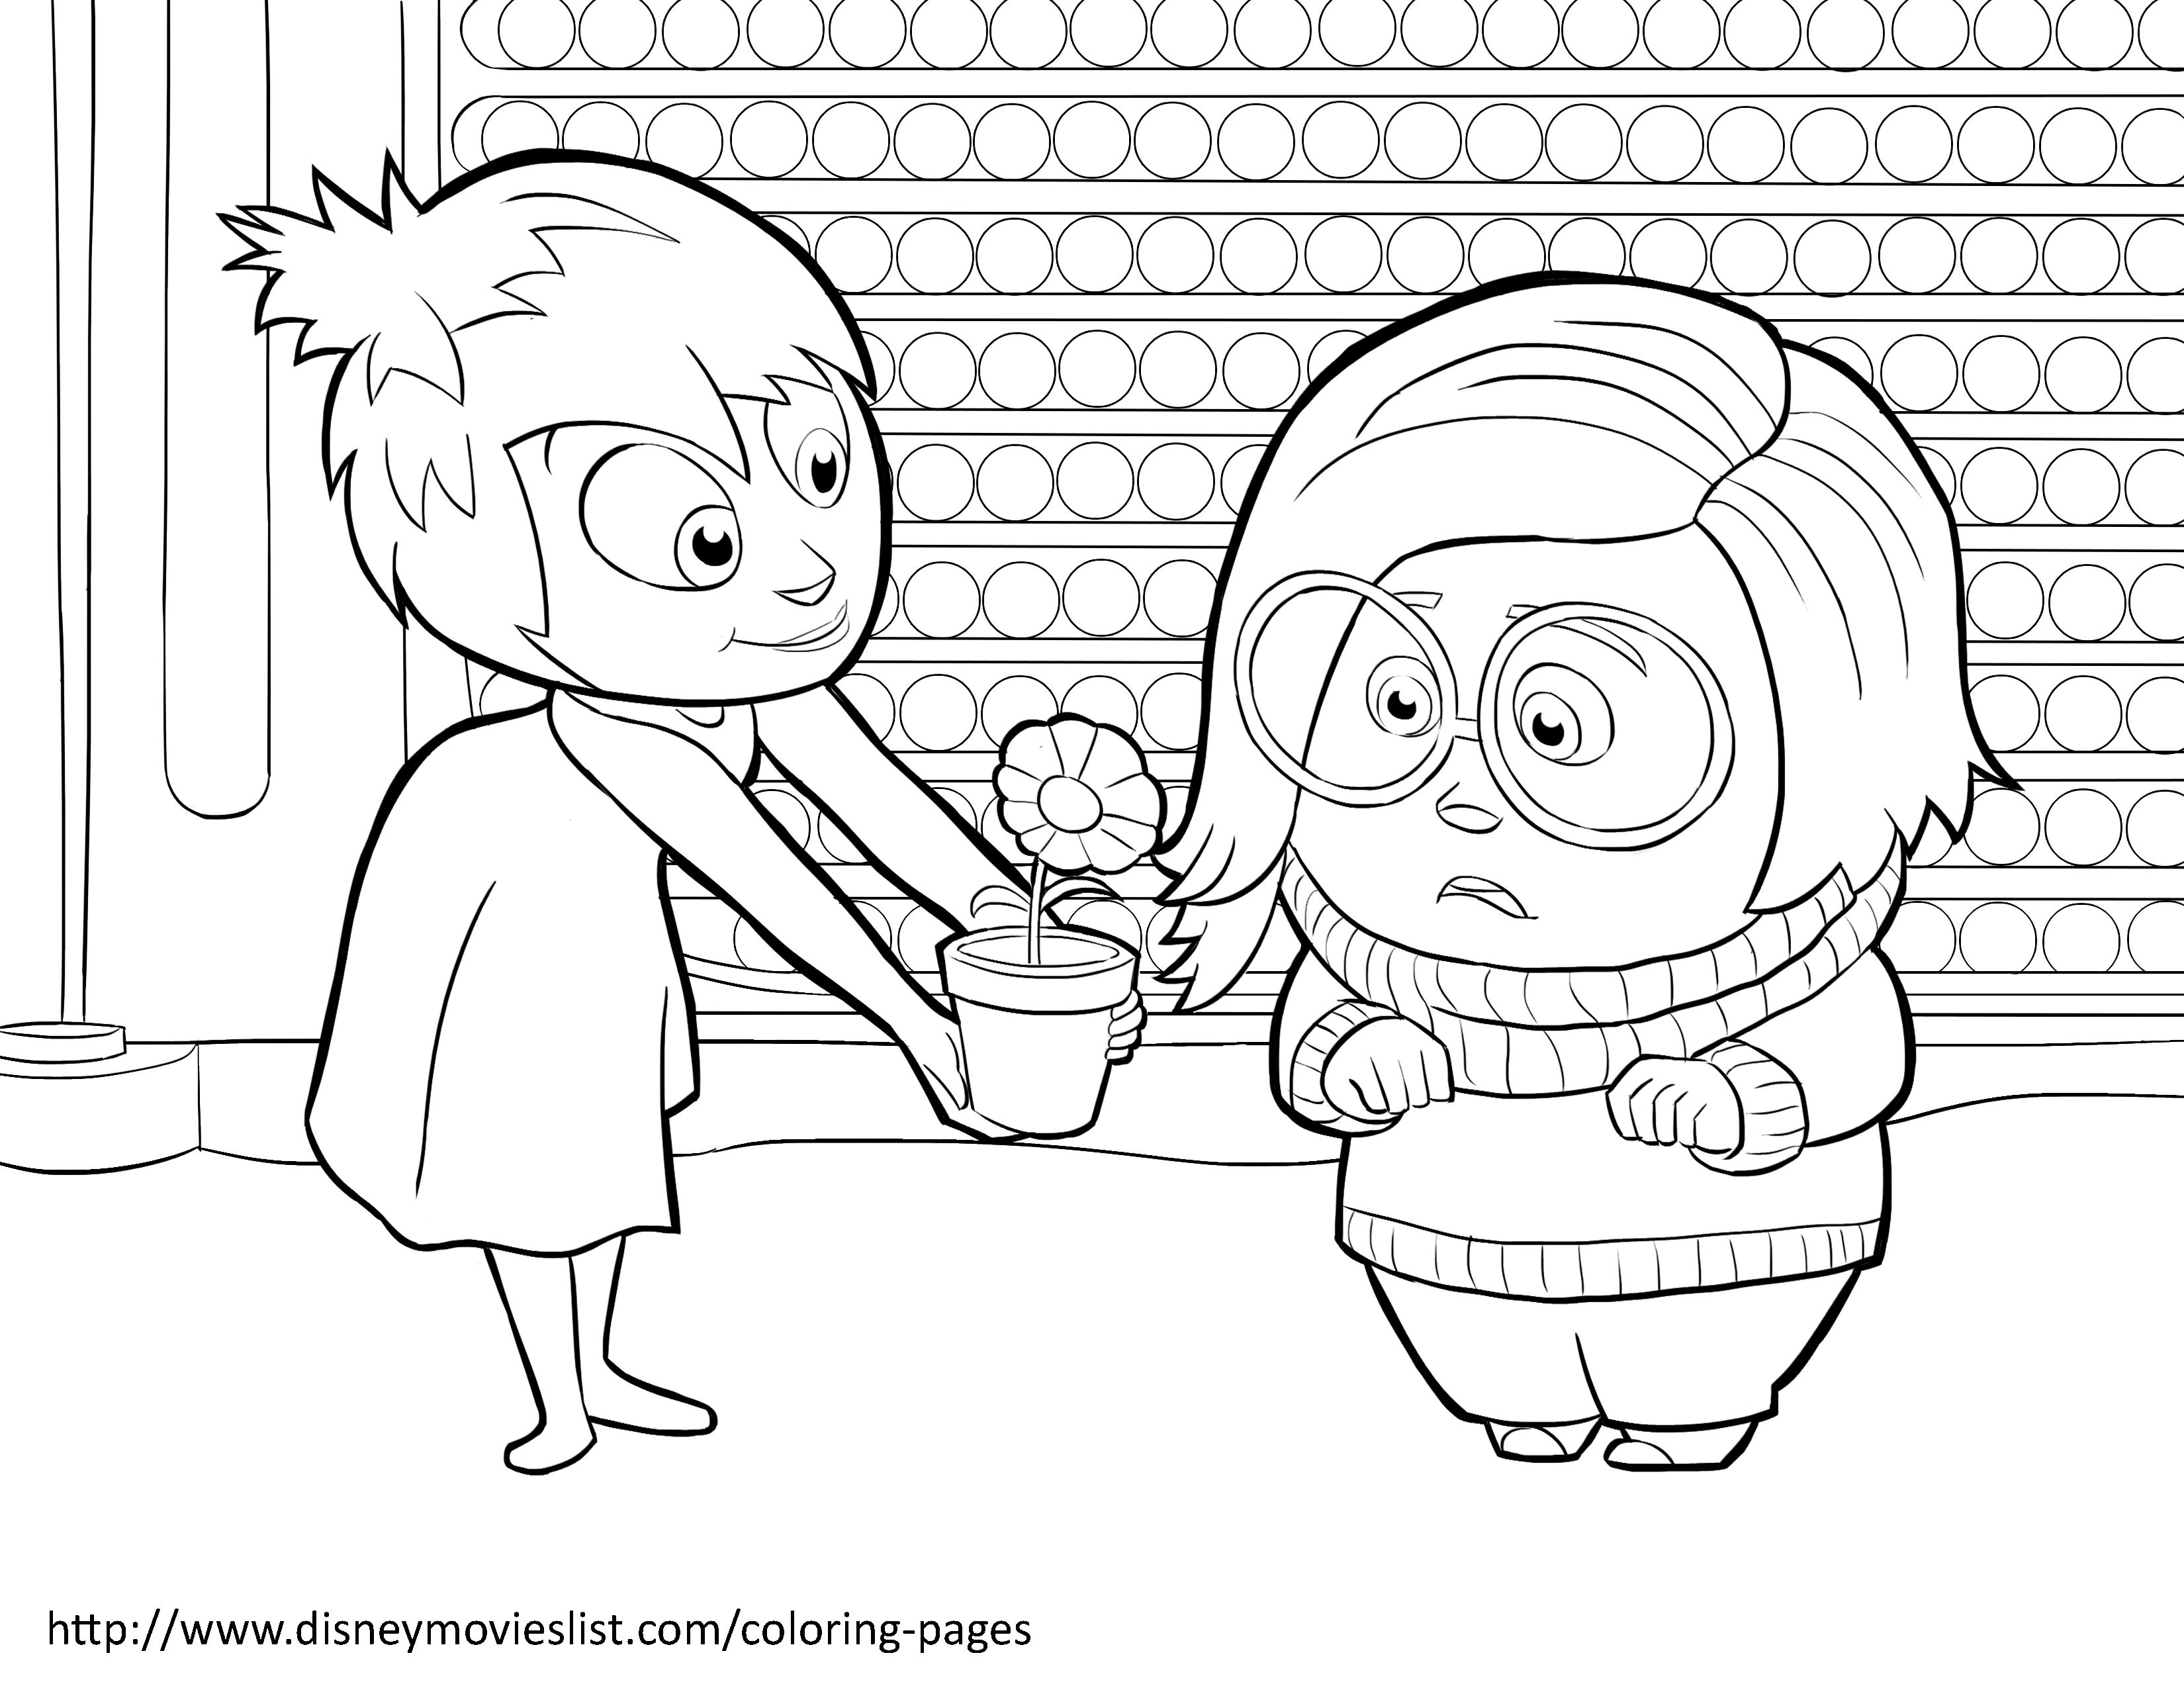 Disney S Inside Out Coloring Pages Sheet Free Disney Printable